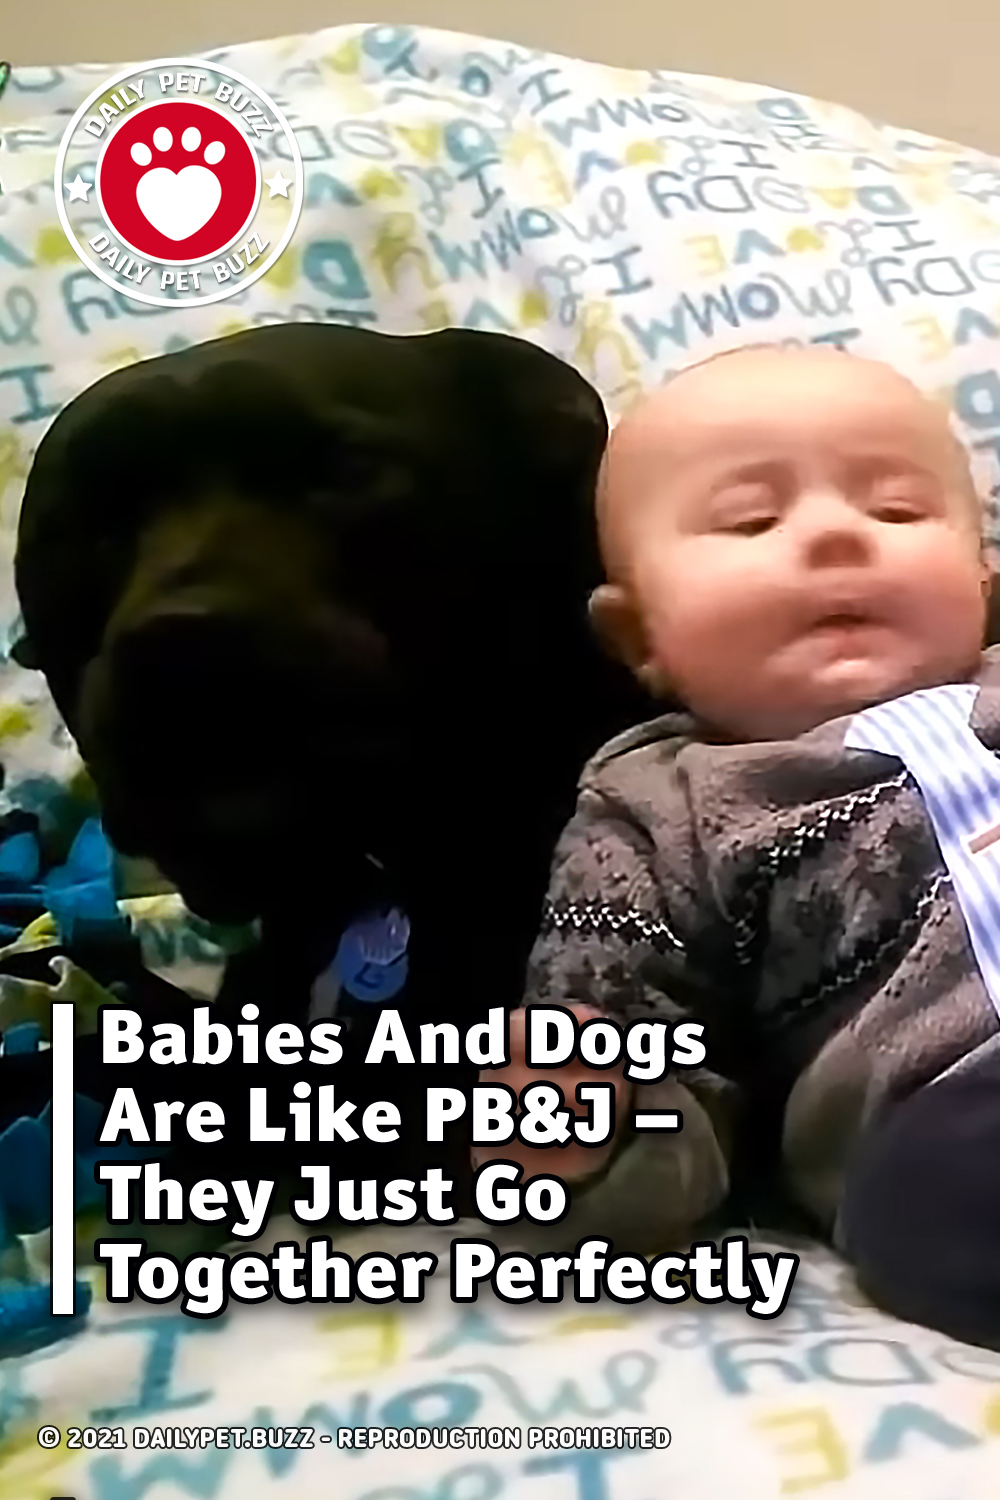 Babies And Dogs Are Like PB&J - They Just Go Together Perfectly